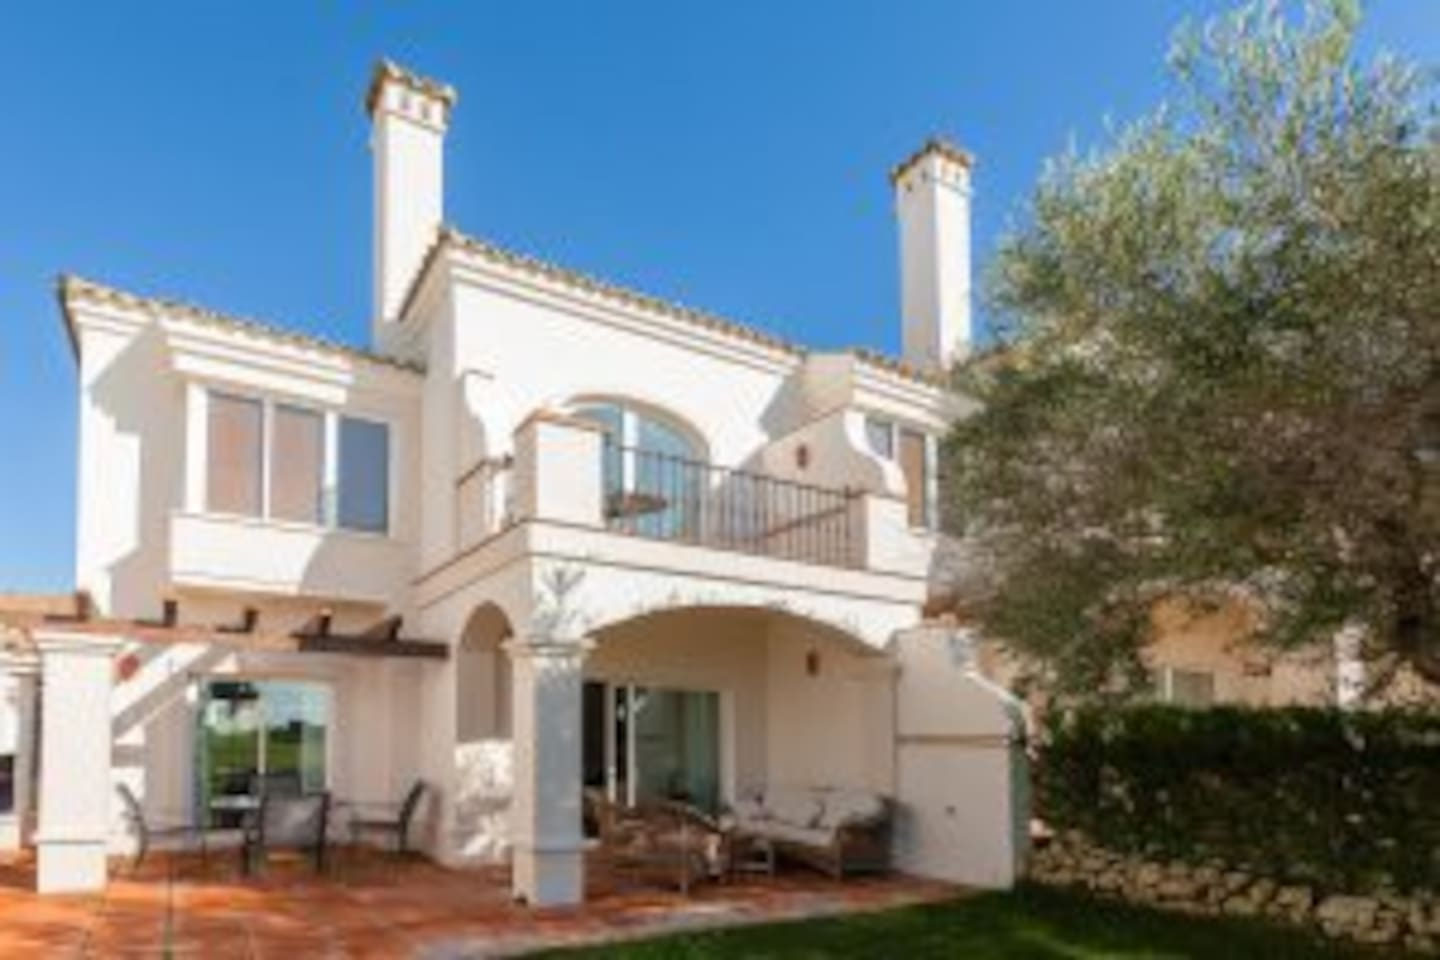 Luxury family holiday home for rent in Arcos